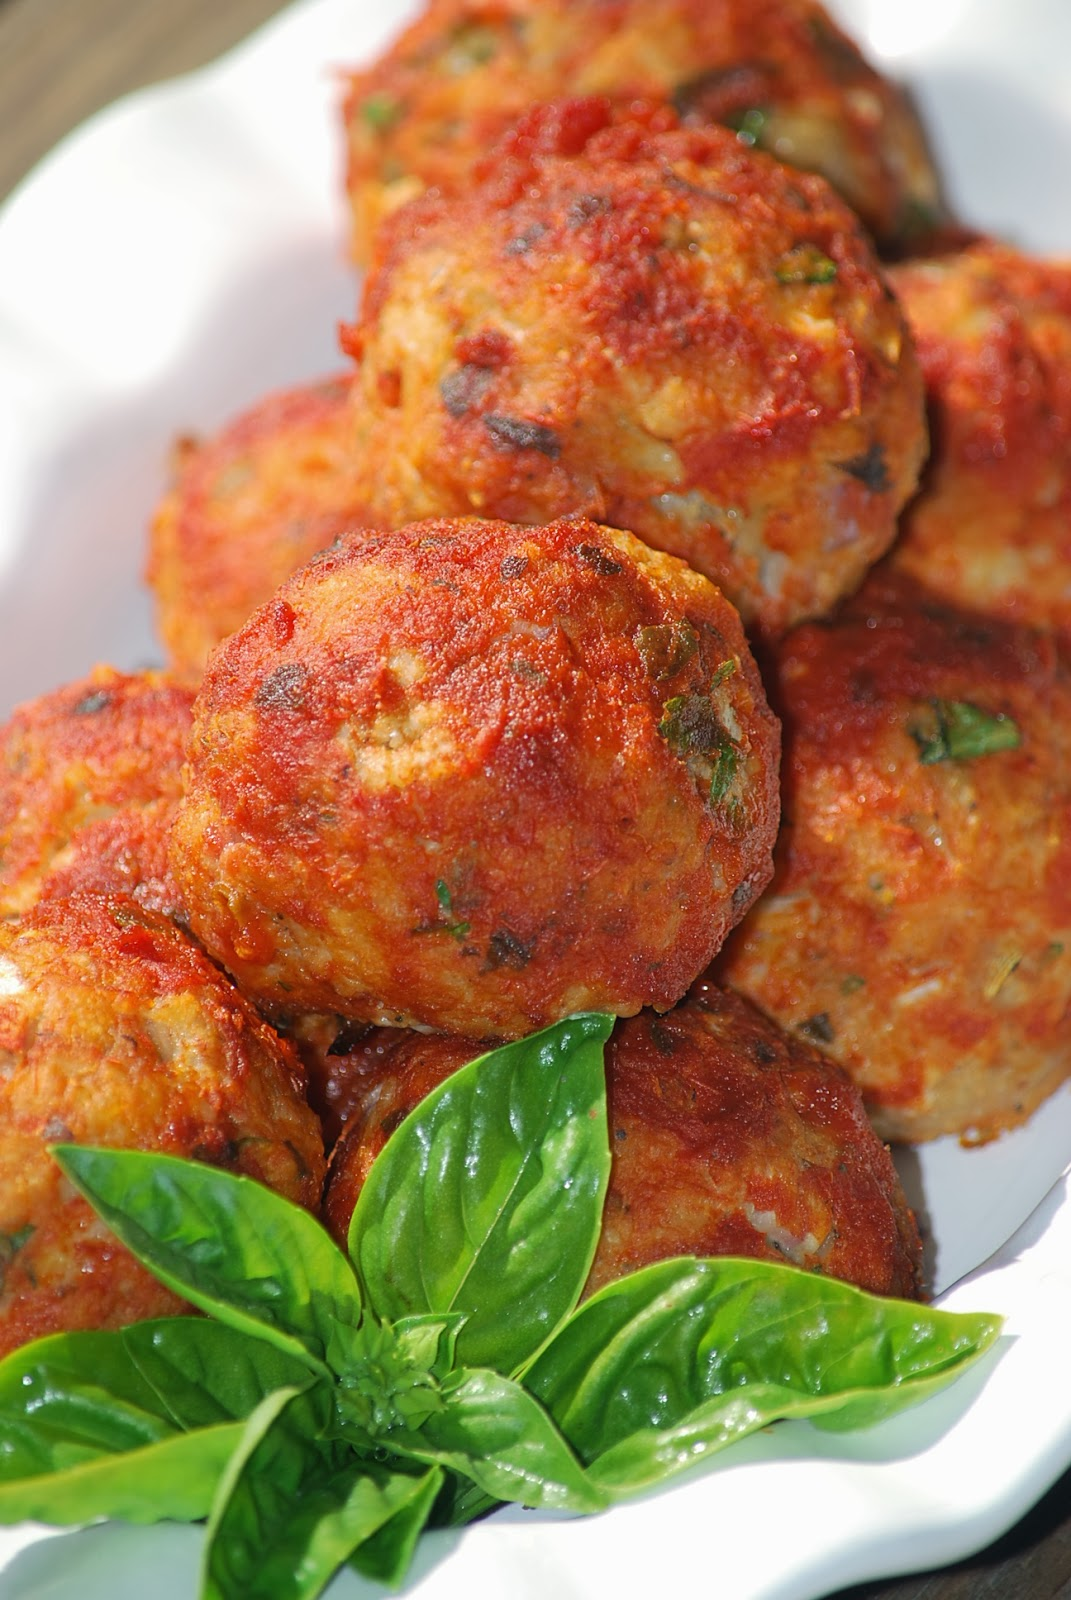 My story in recipes: Chicken Parmesan Meatballs